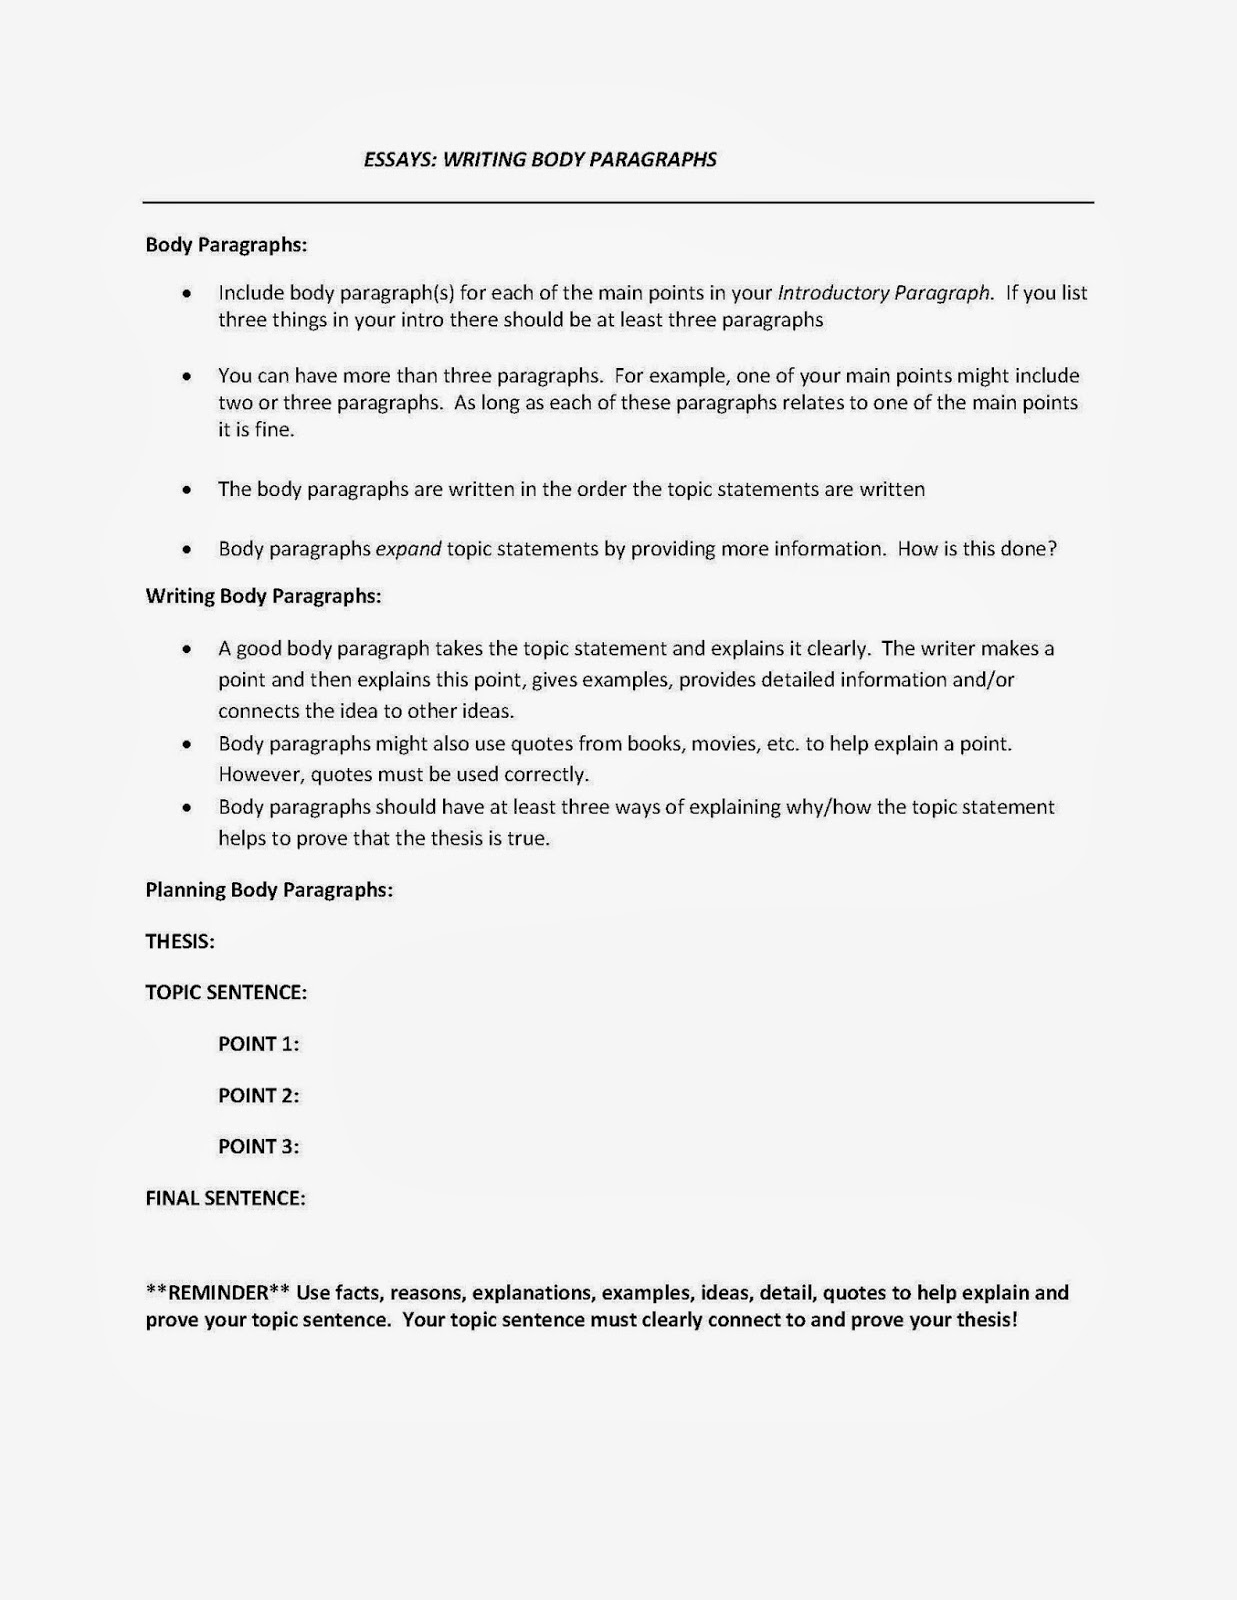 008 Essay Example En8 Bodyparagraphs The Fearsome Giver Topics Ideas Questions Full